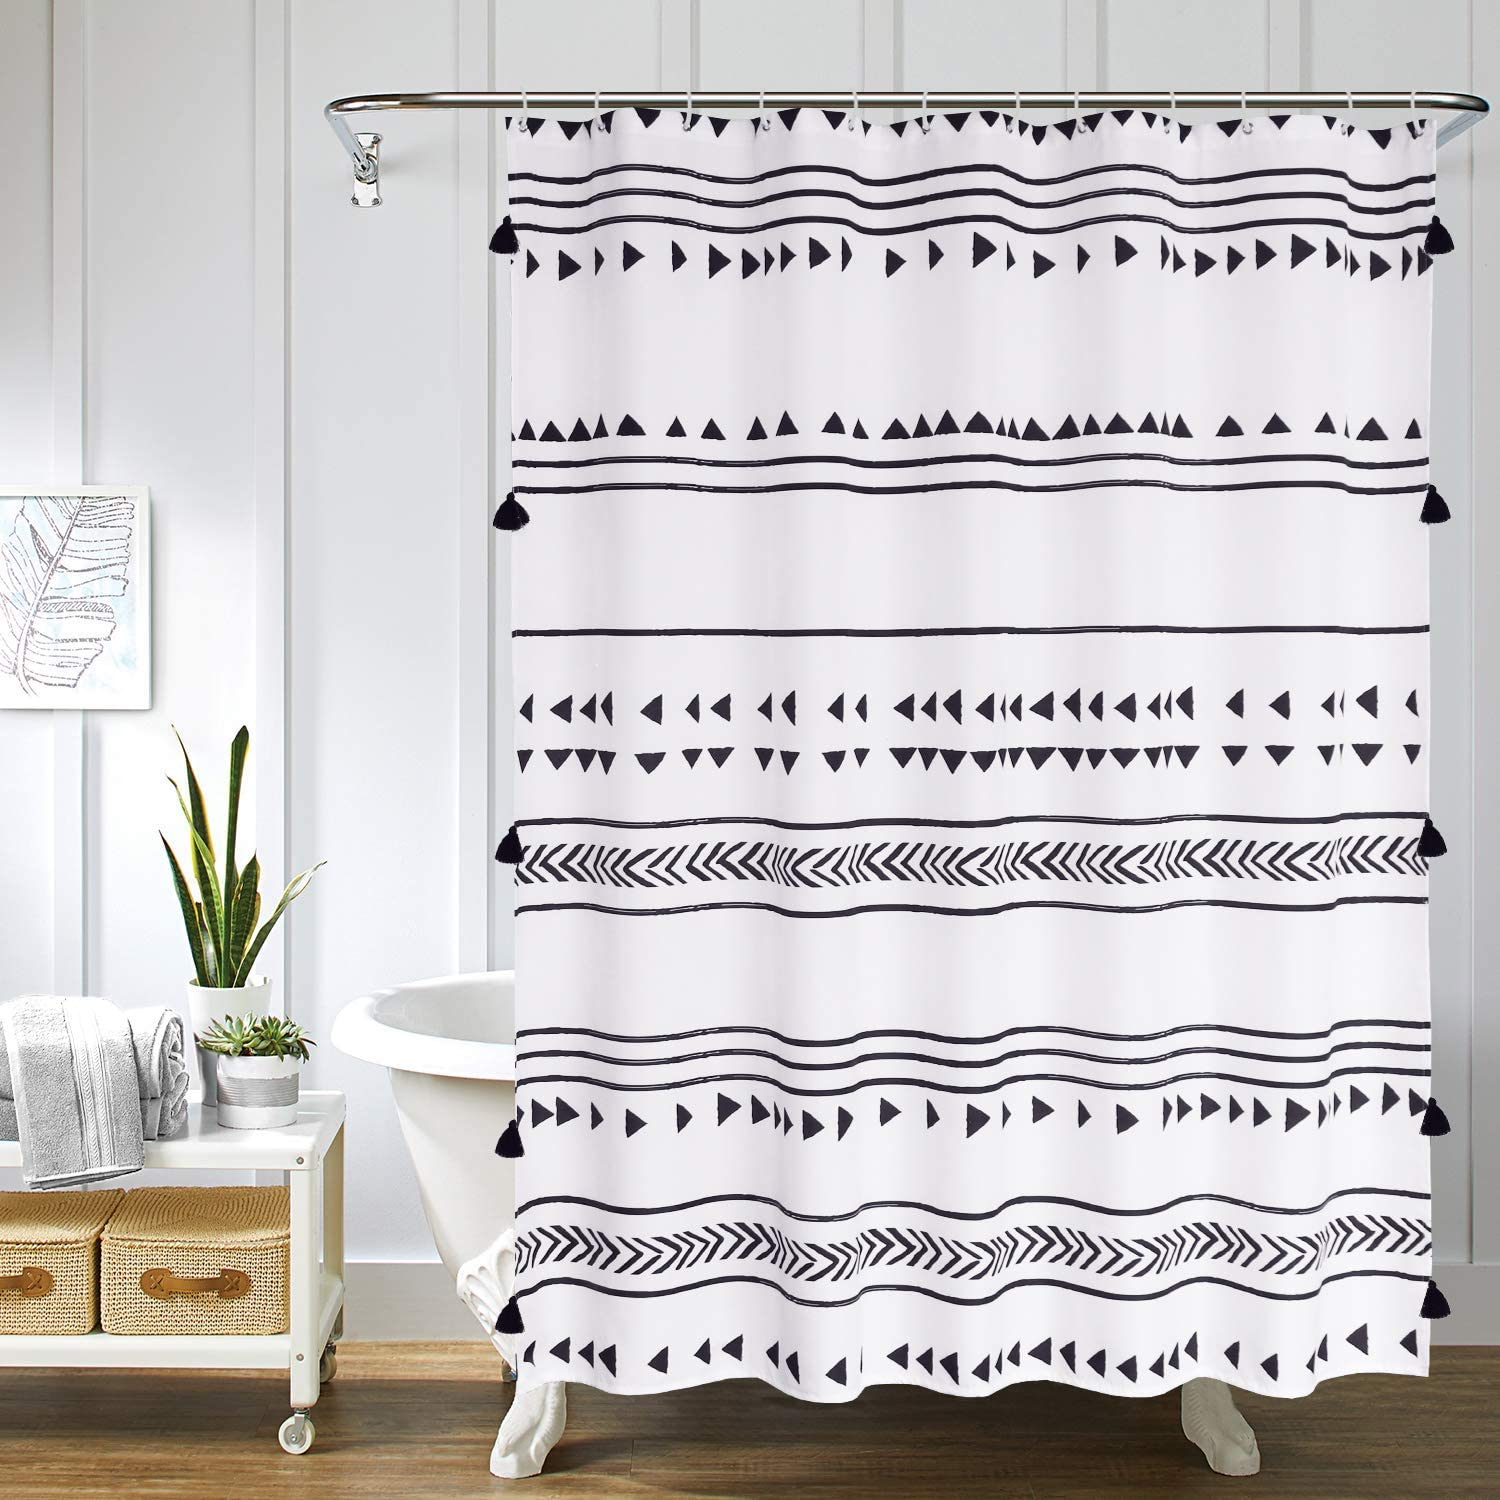 Uphome Black and White Boho Shower Curtain Fabric Triangle Stripes Geometric Tassel Shower Curtain Set with Hooks Chic Tribal Bathroom Accessories Heavy Duty and Waterproof, 72x78